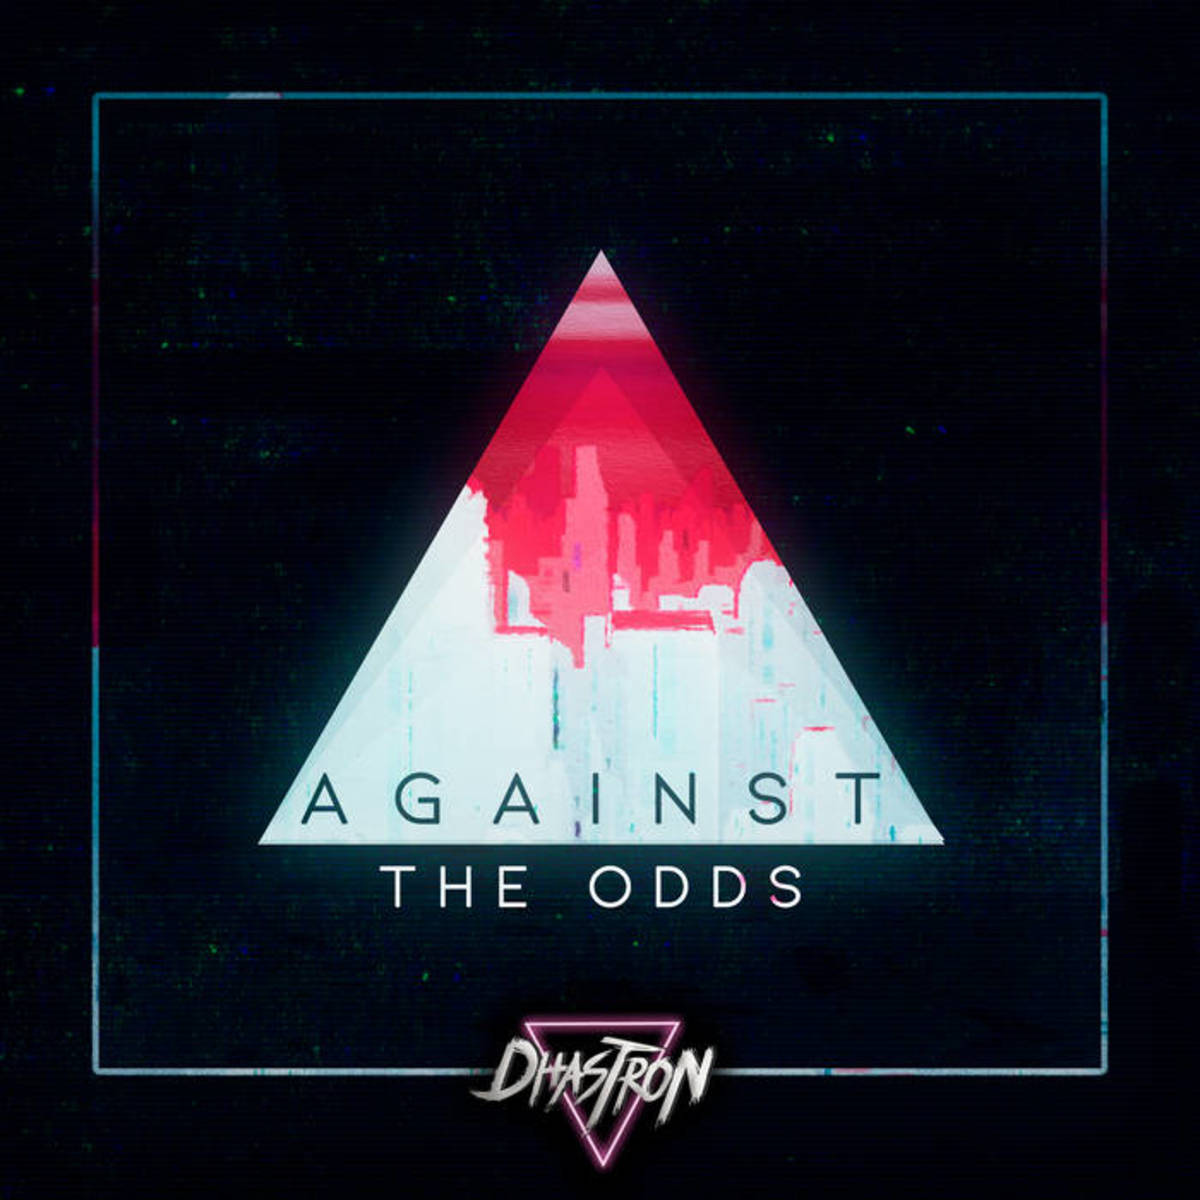 synth-single-review-against-the-odds-by-dhastron